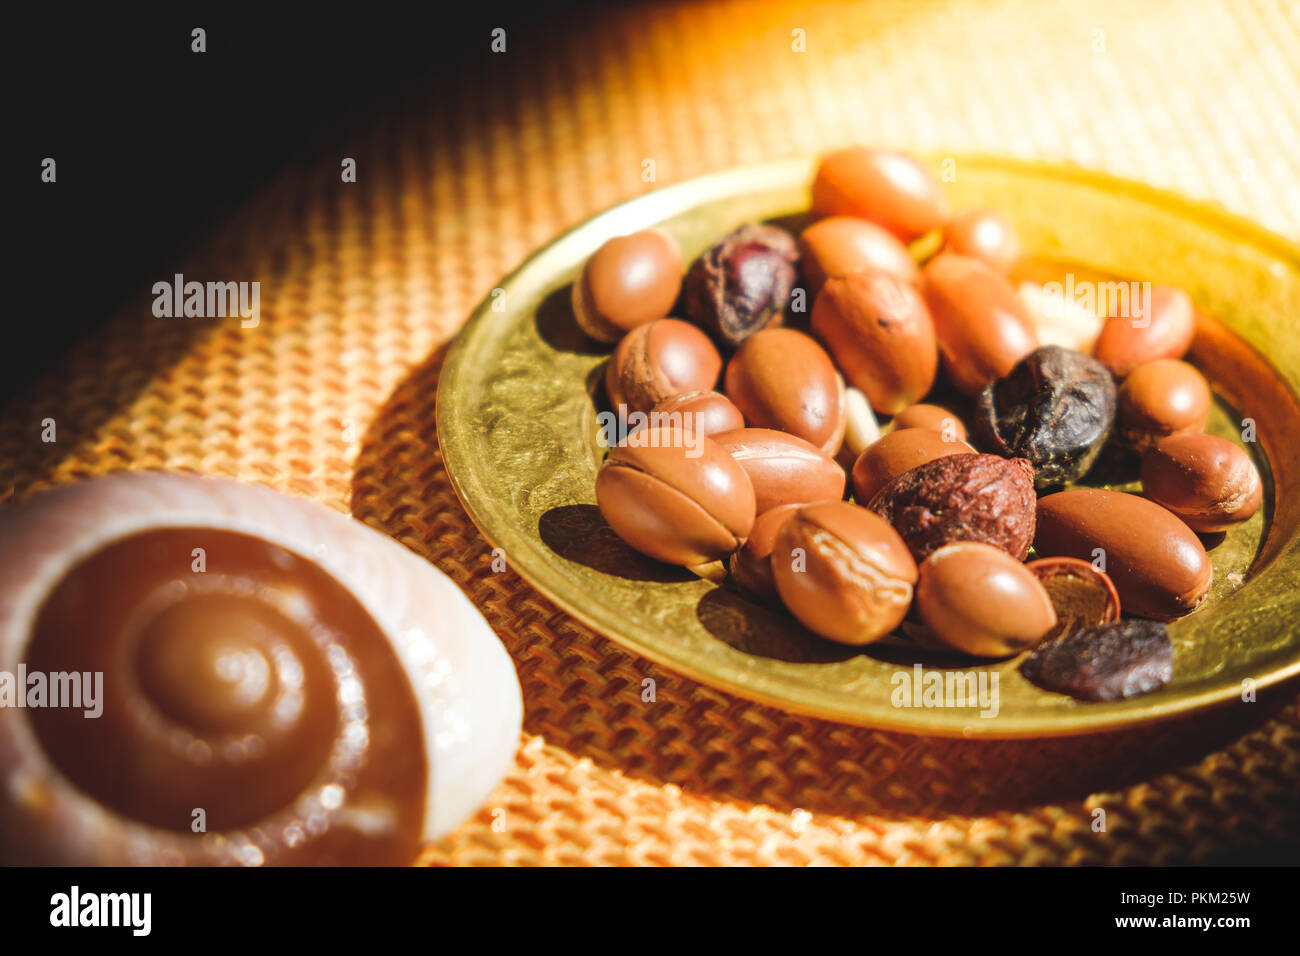 Argan nuts seeds on plate - Argan is an antioxidant used to produce oil for the skin - Stock Image